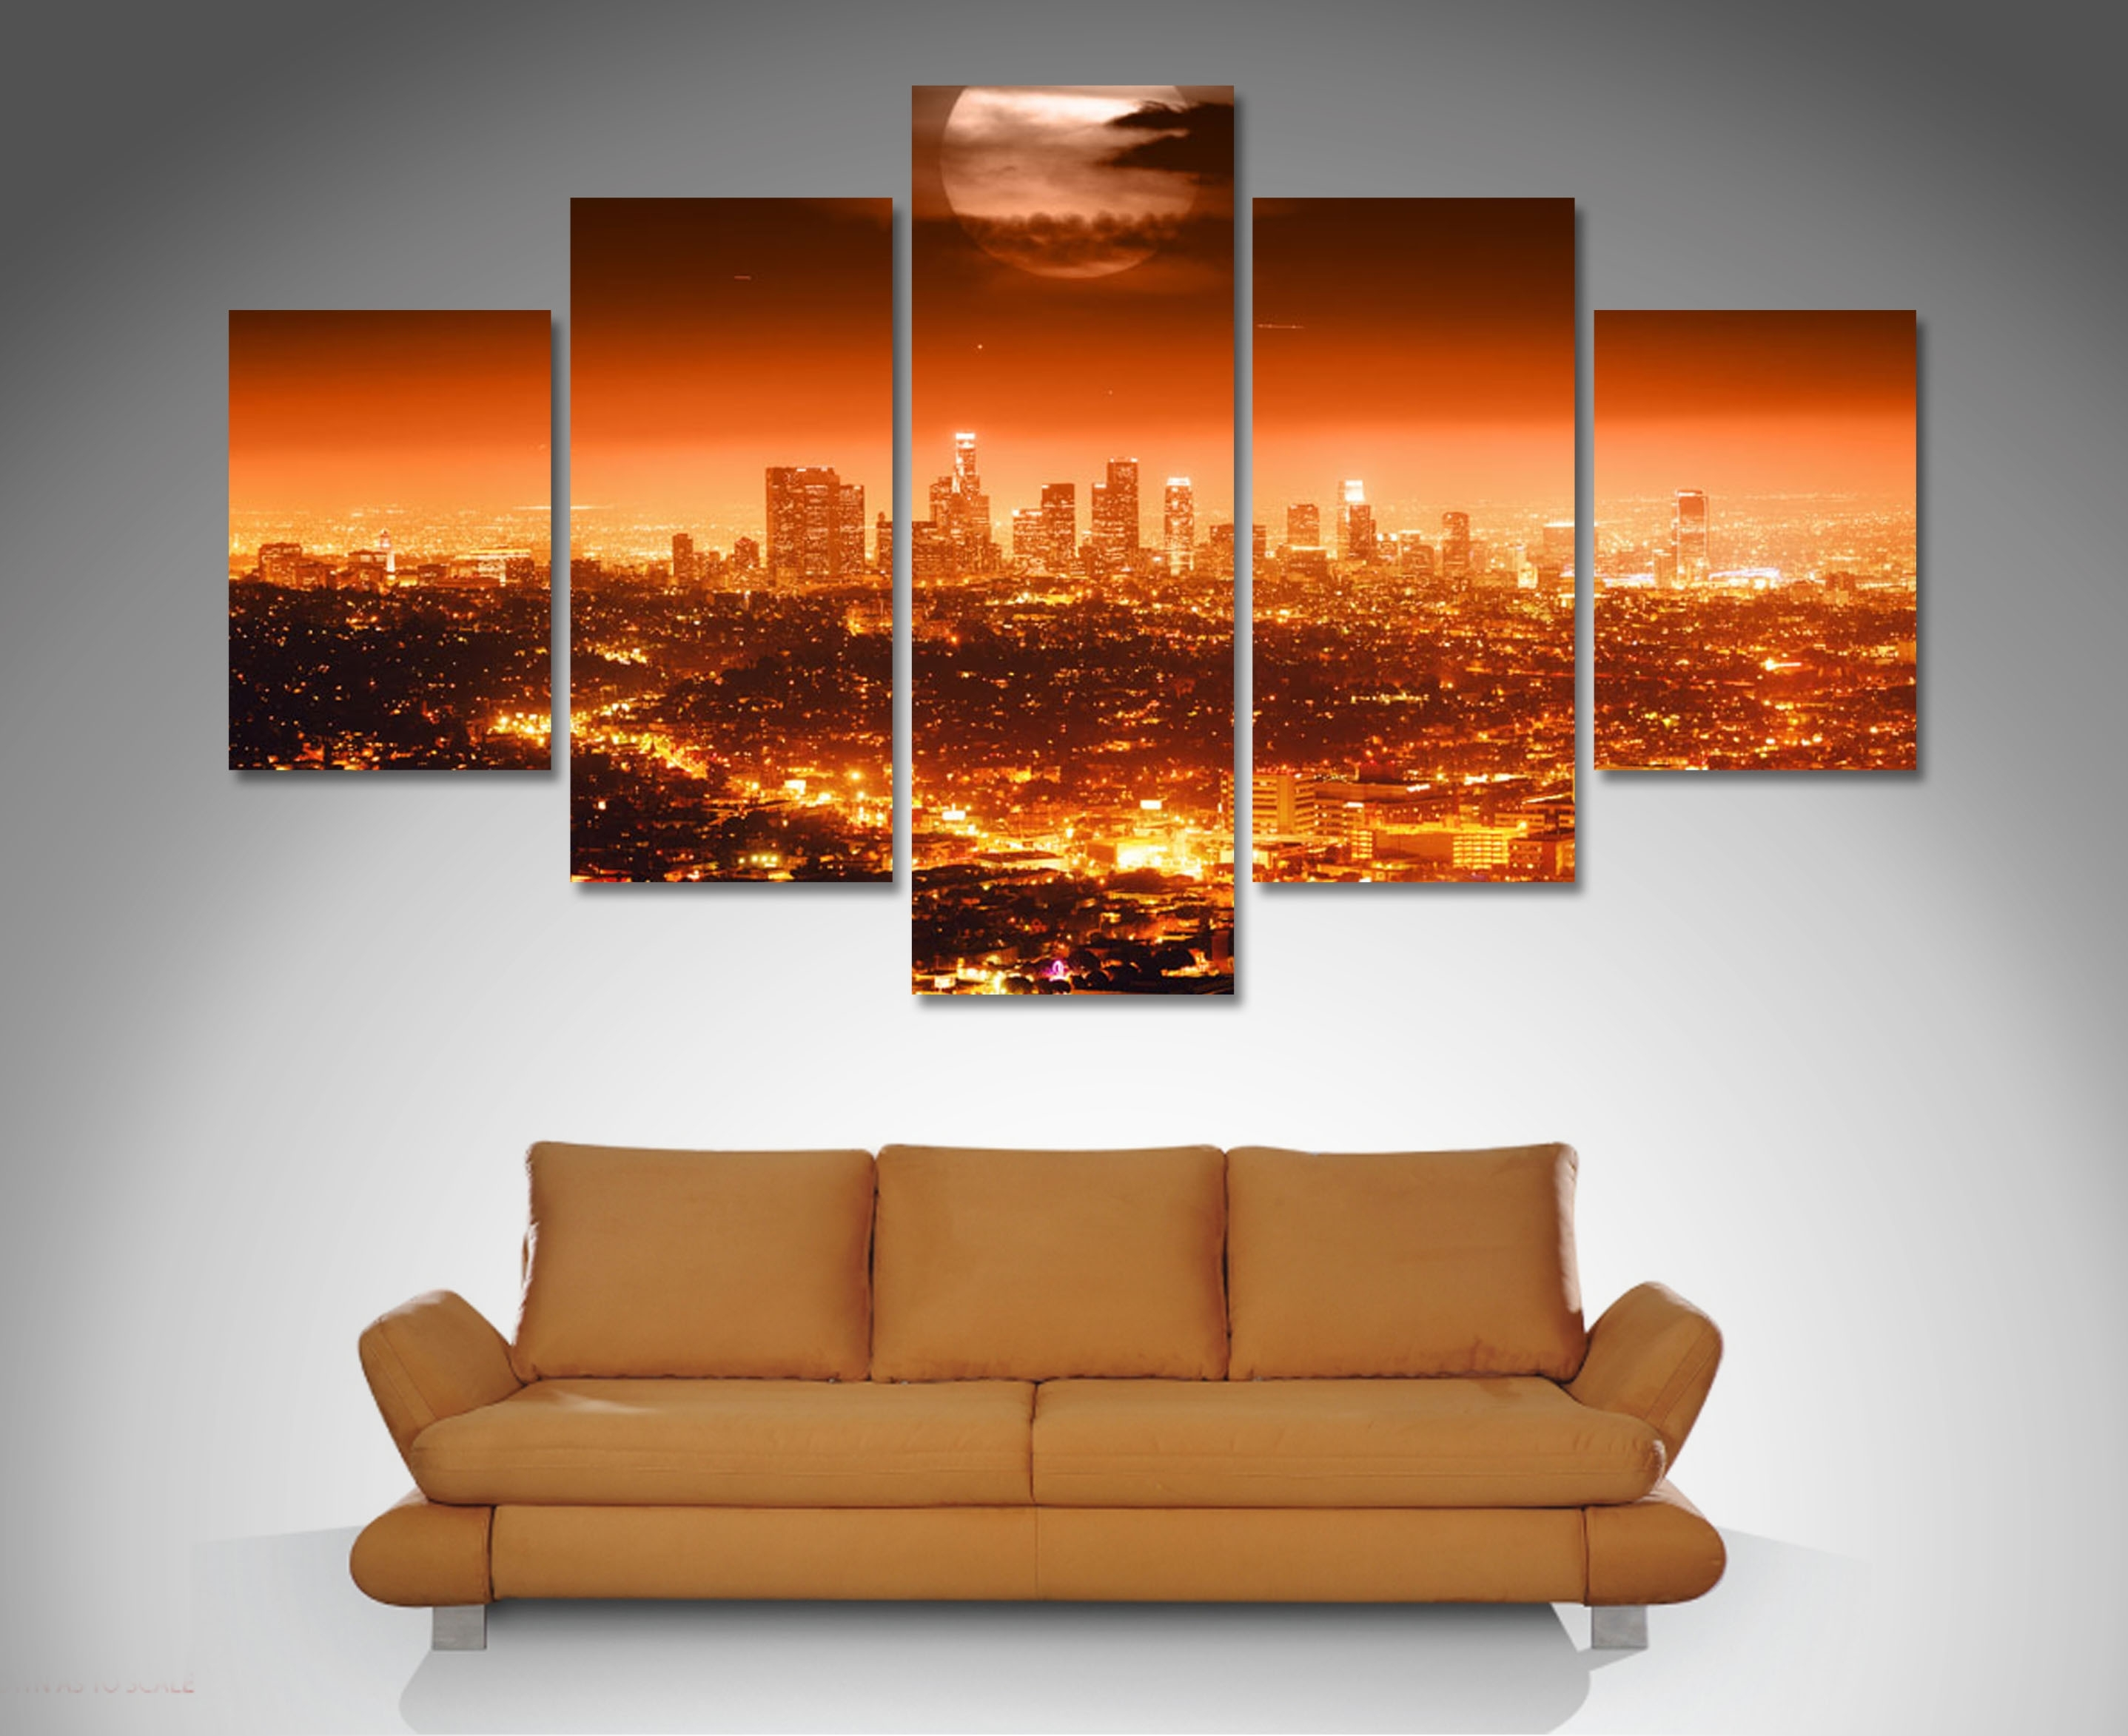 Los Angeles 5 Panel Wall Art Canvas Print Within Most Popular Panel Wall Art (View 10 of 20)